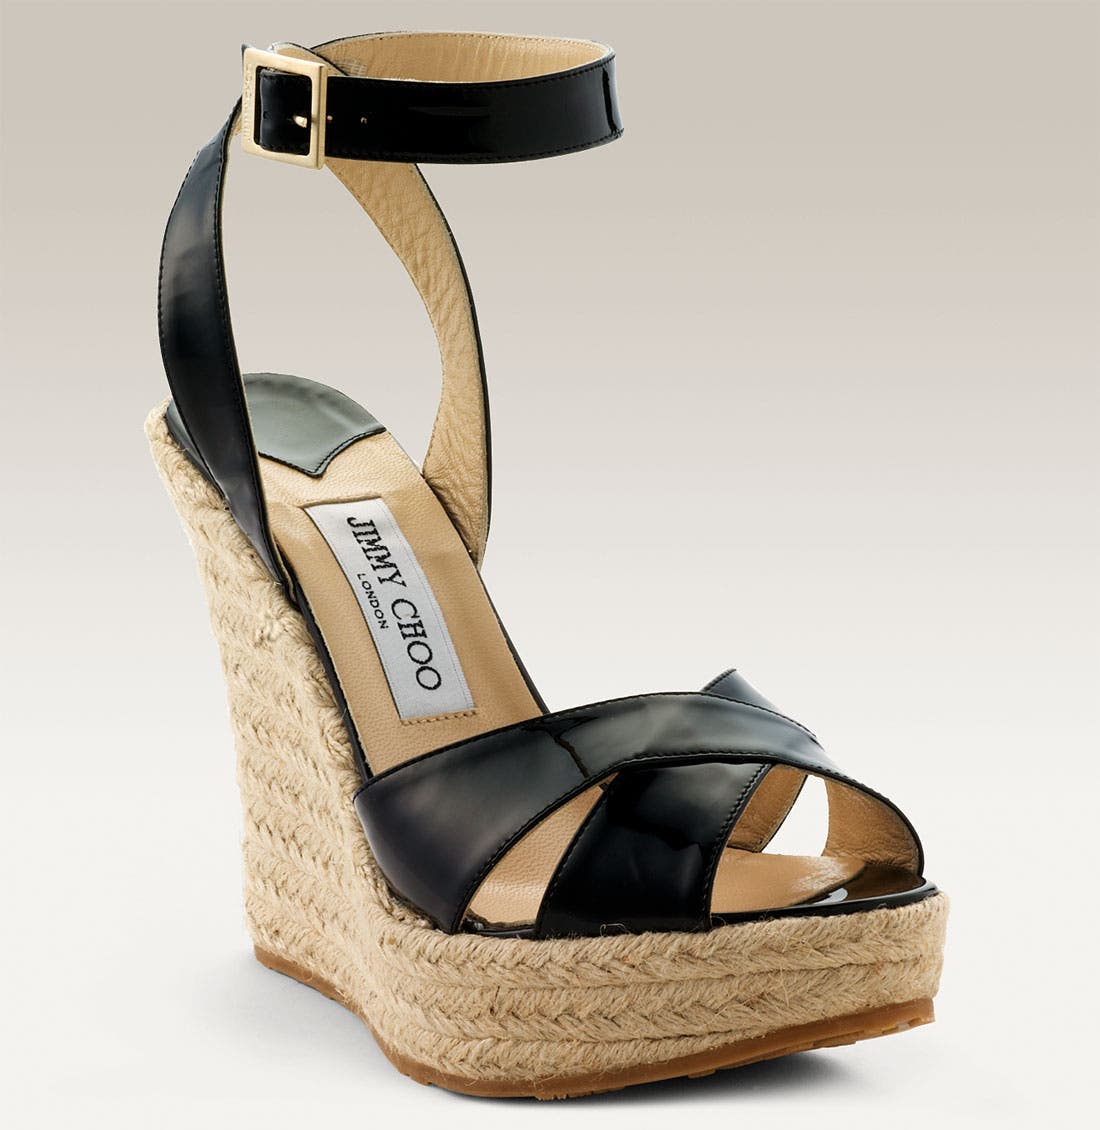 Alternate Image 1 Selected - Jimmy Choo 'Phoenix' Espadrille Sandal